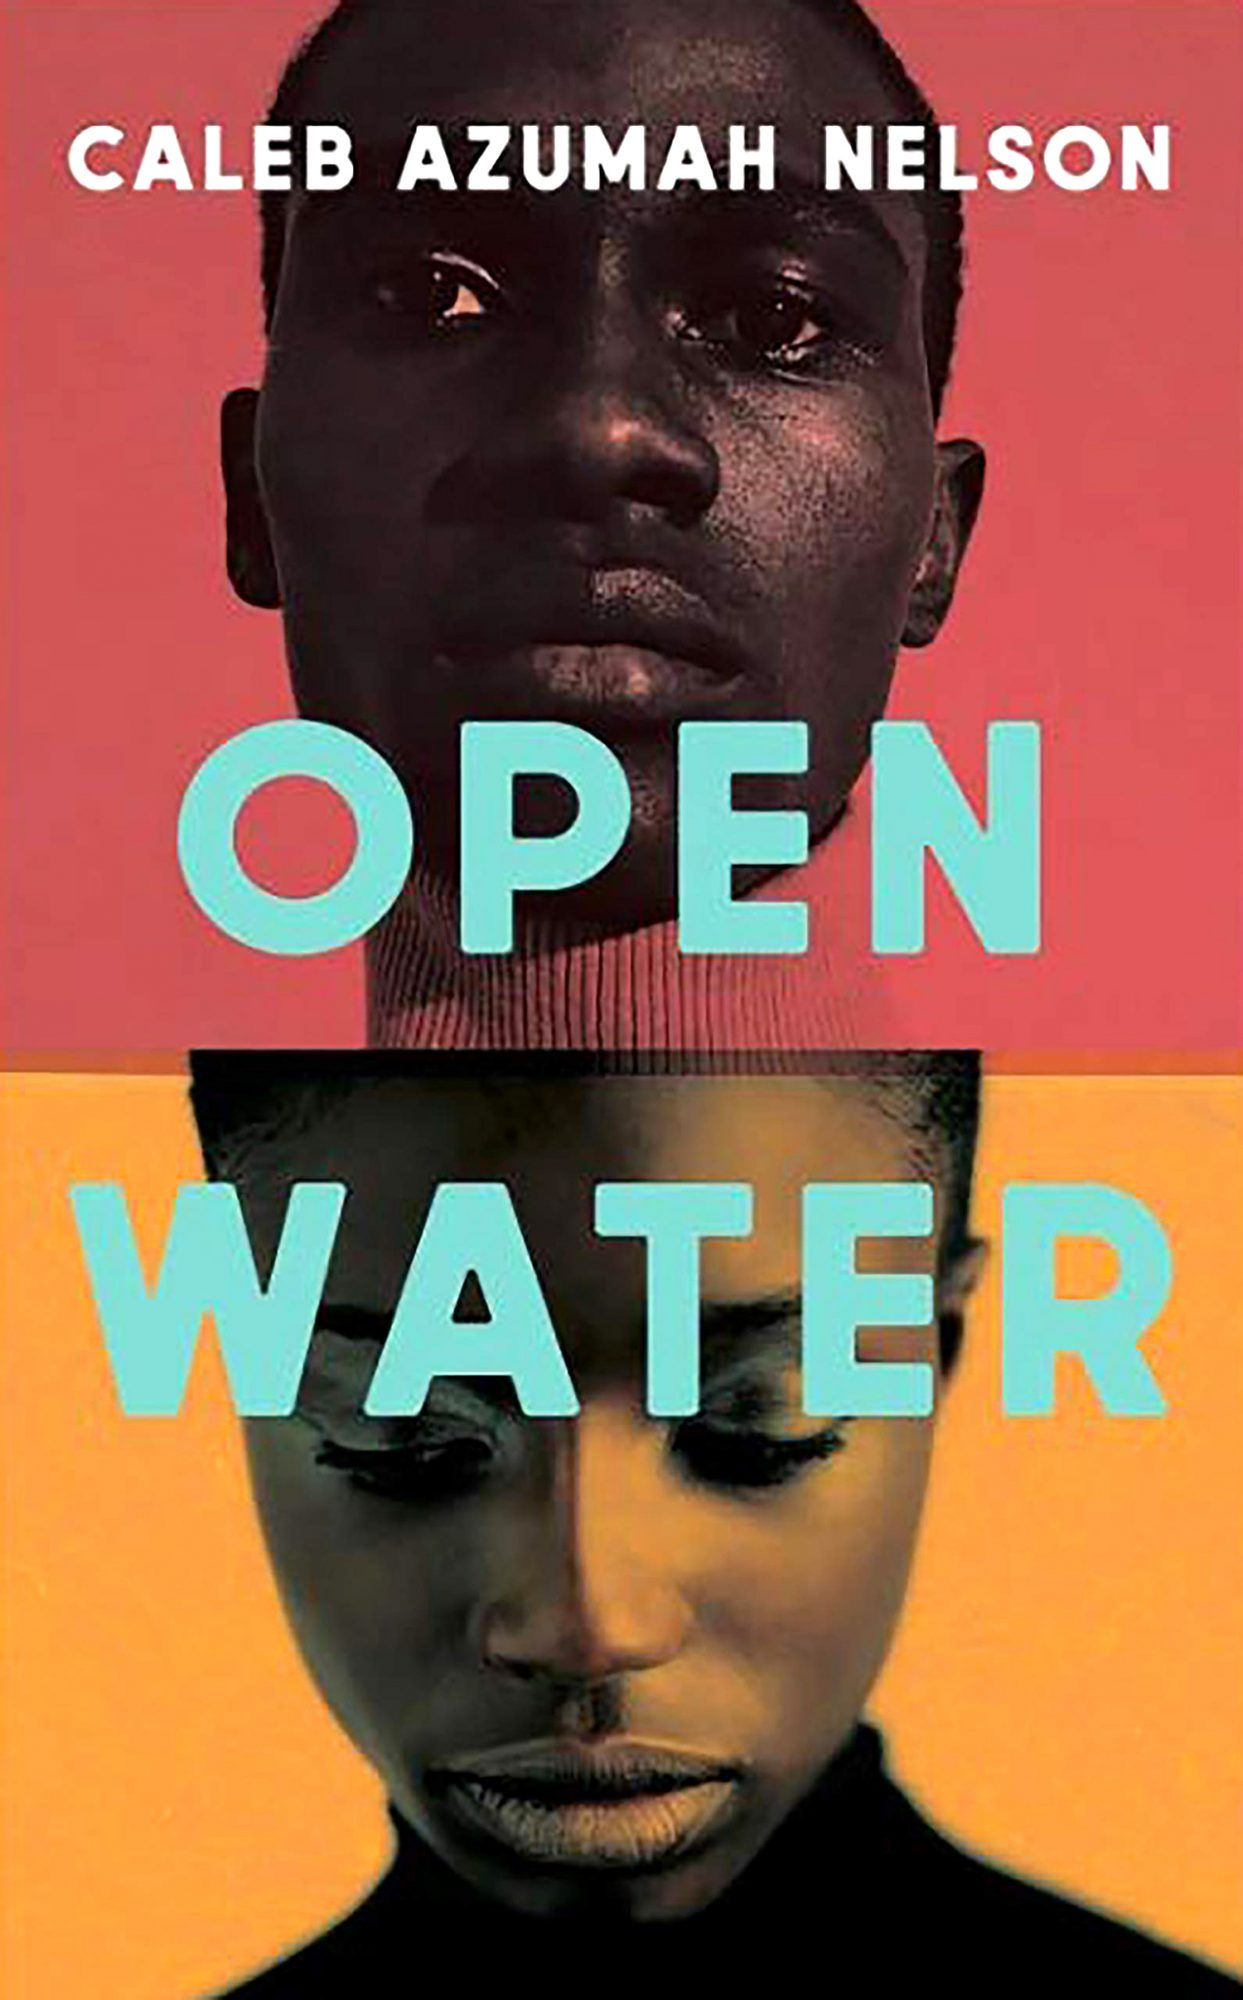 Open Water Paperback by Caleb Azumah